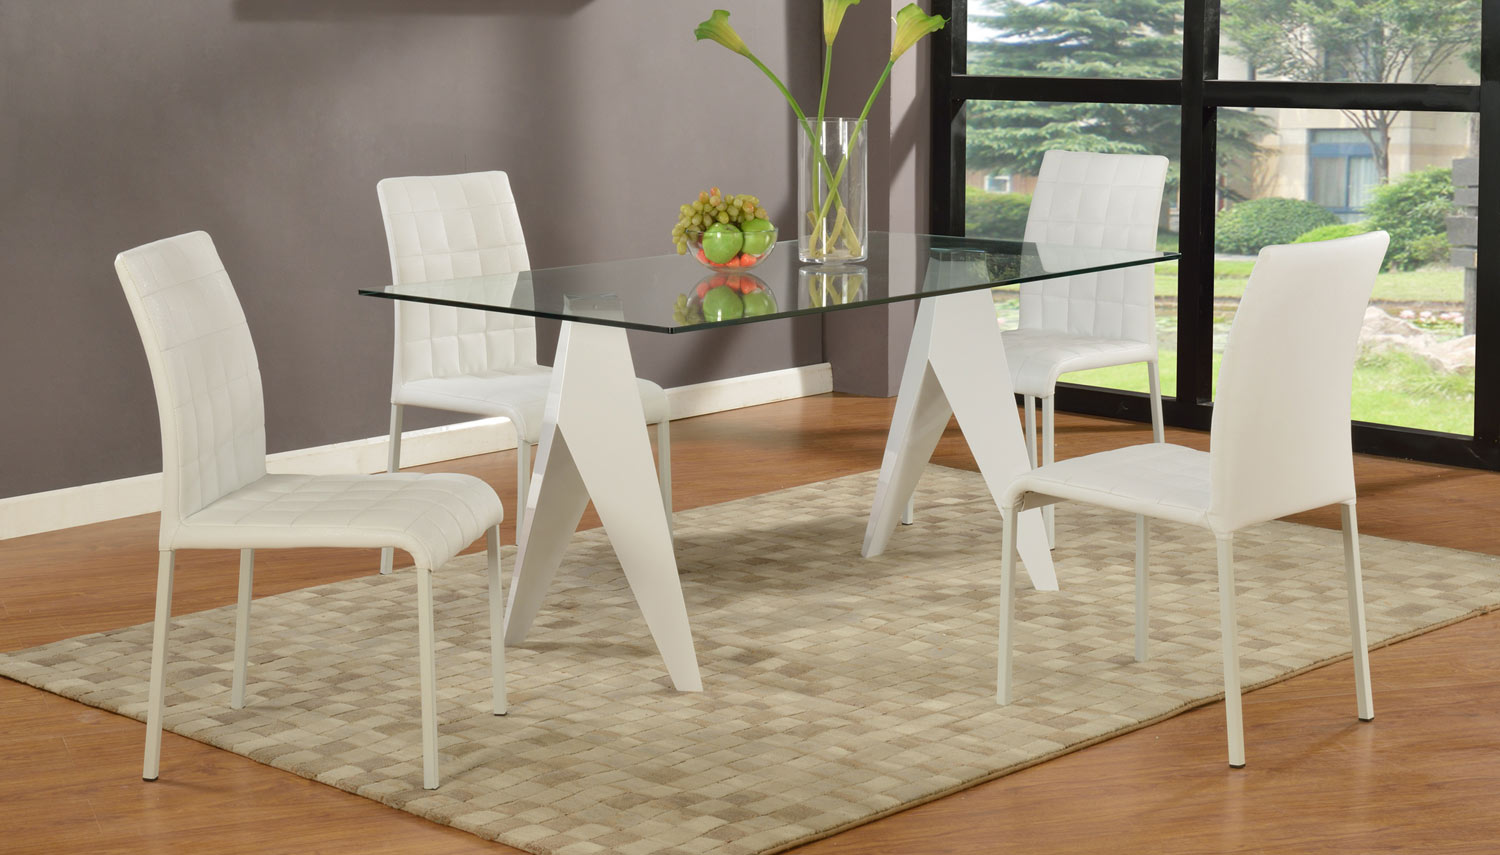 Chintaly Imports Fielding Rectangular 5-Piece Dining Set - Clear Glass/Gloss White